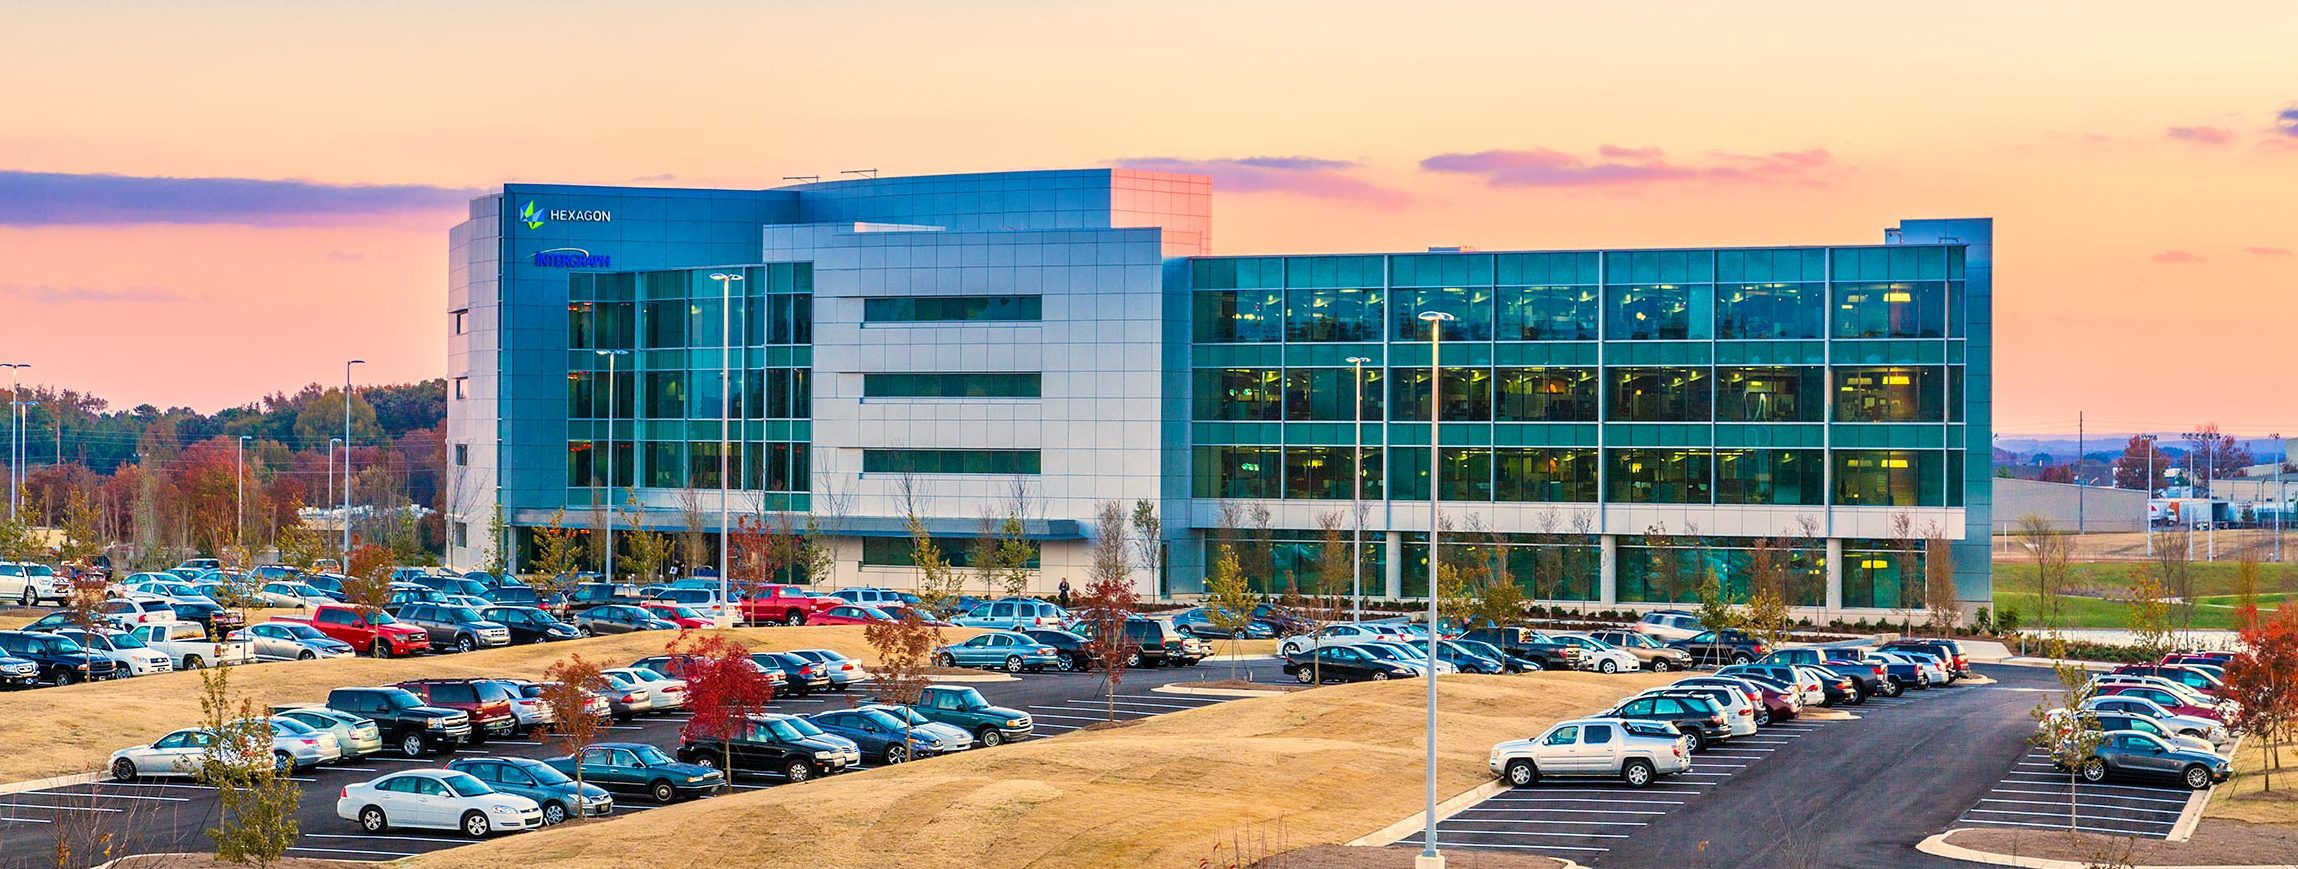 Intergraph headquarters at sunset